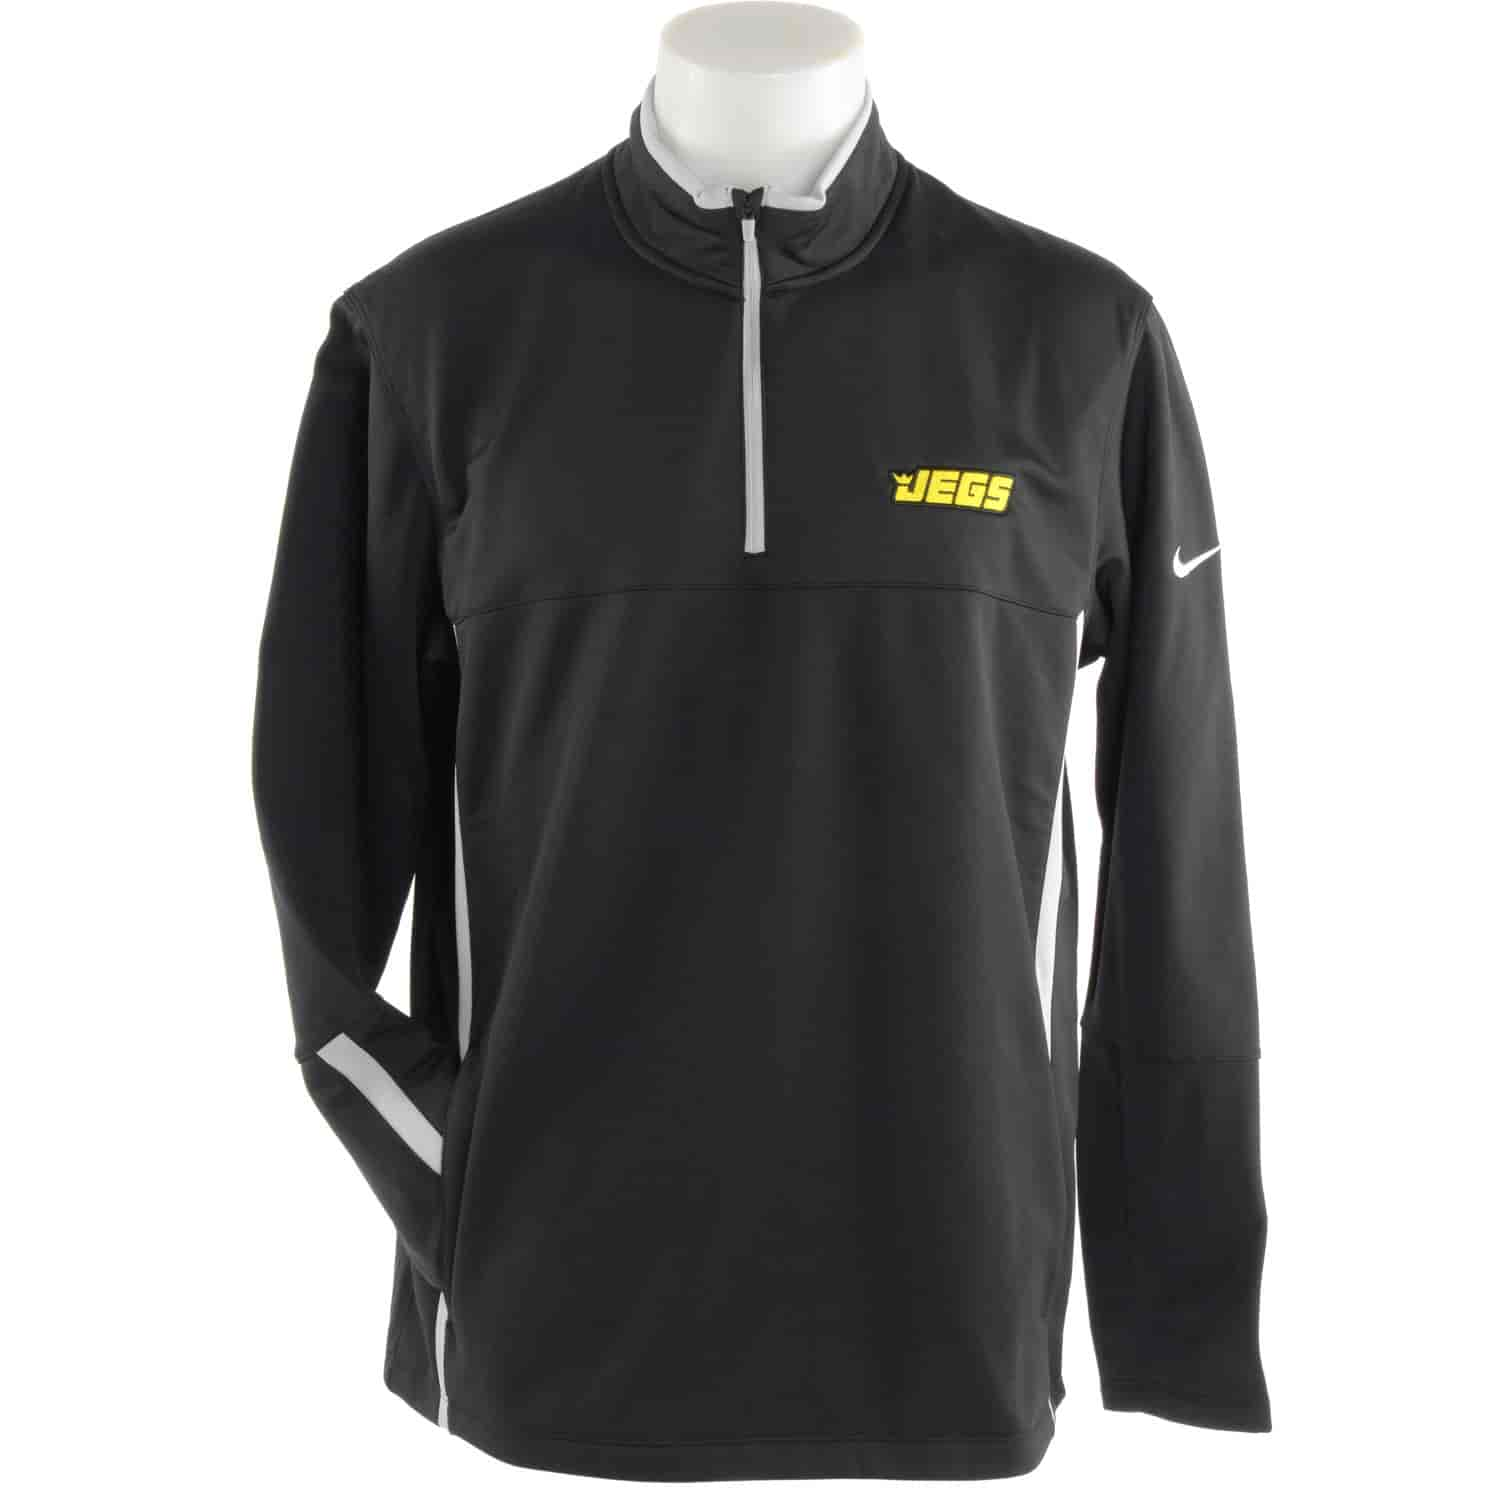 JEGS Apparel and Collectibles Fit 1/2 Zip Pullover